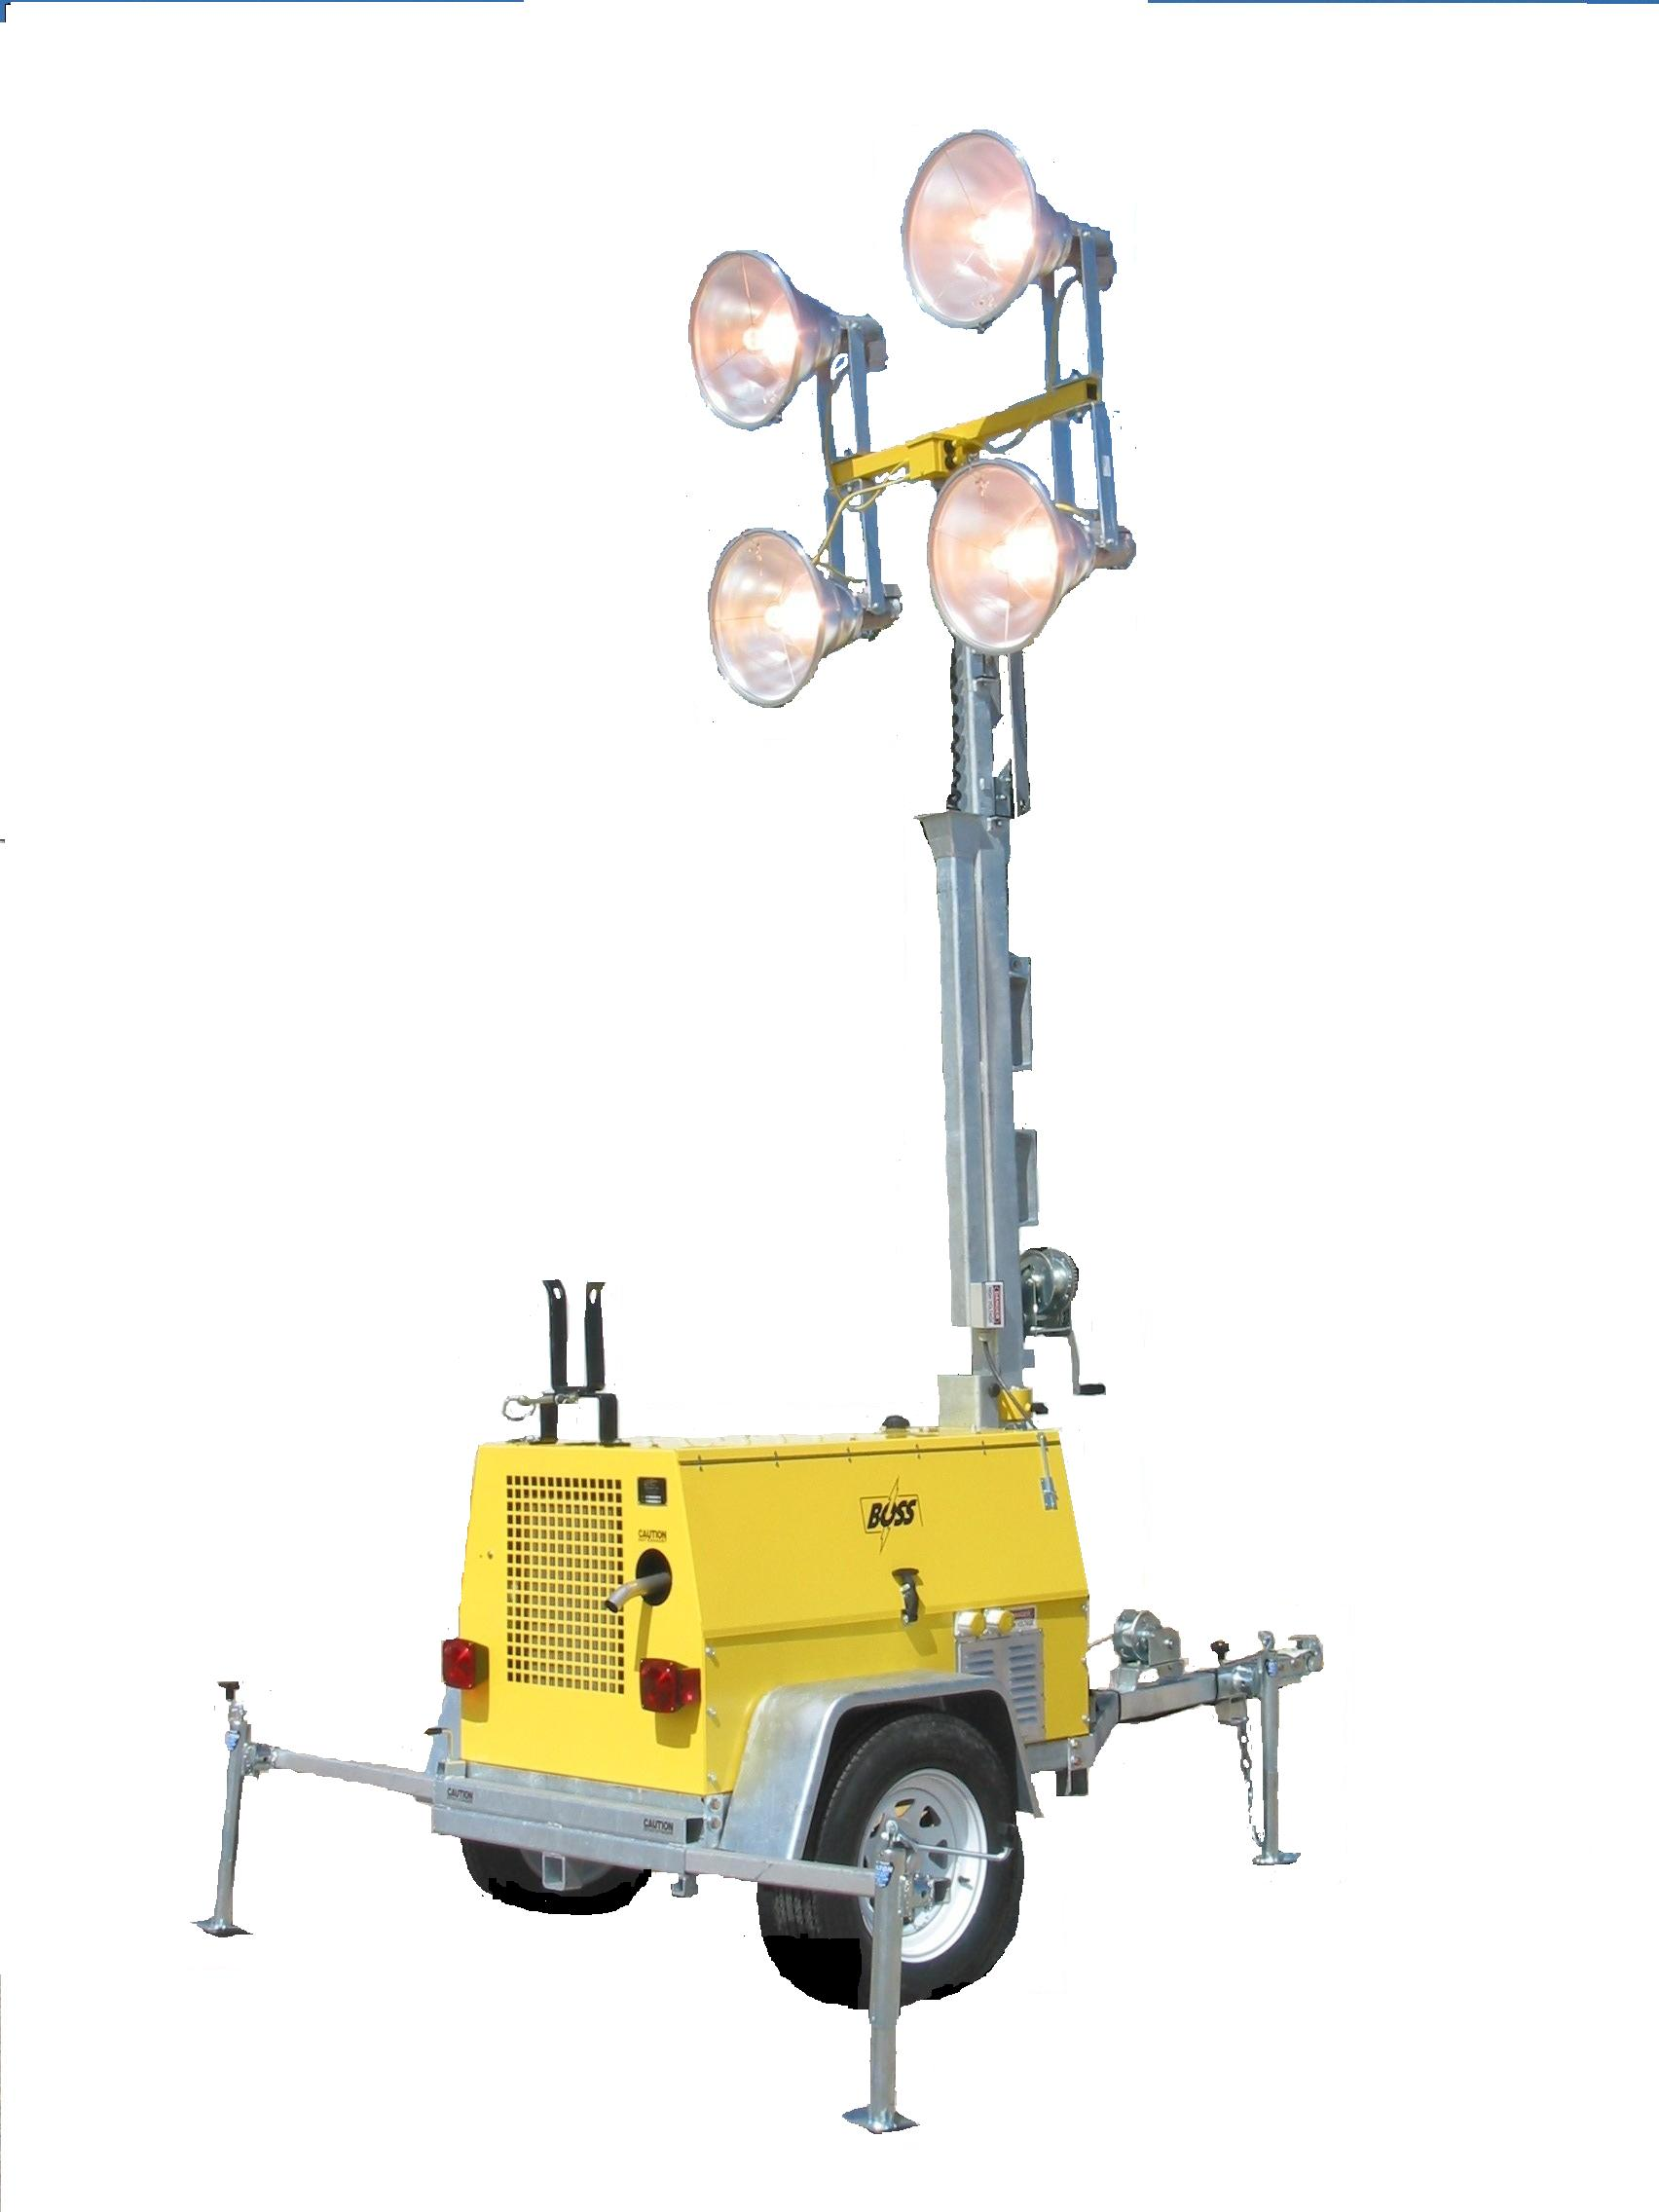 Tour Model 6kw 4 Light Metal Halide Or Led Tower 480 Volt Wiring Diagram Kubota